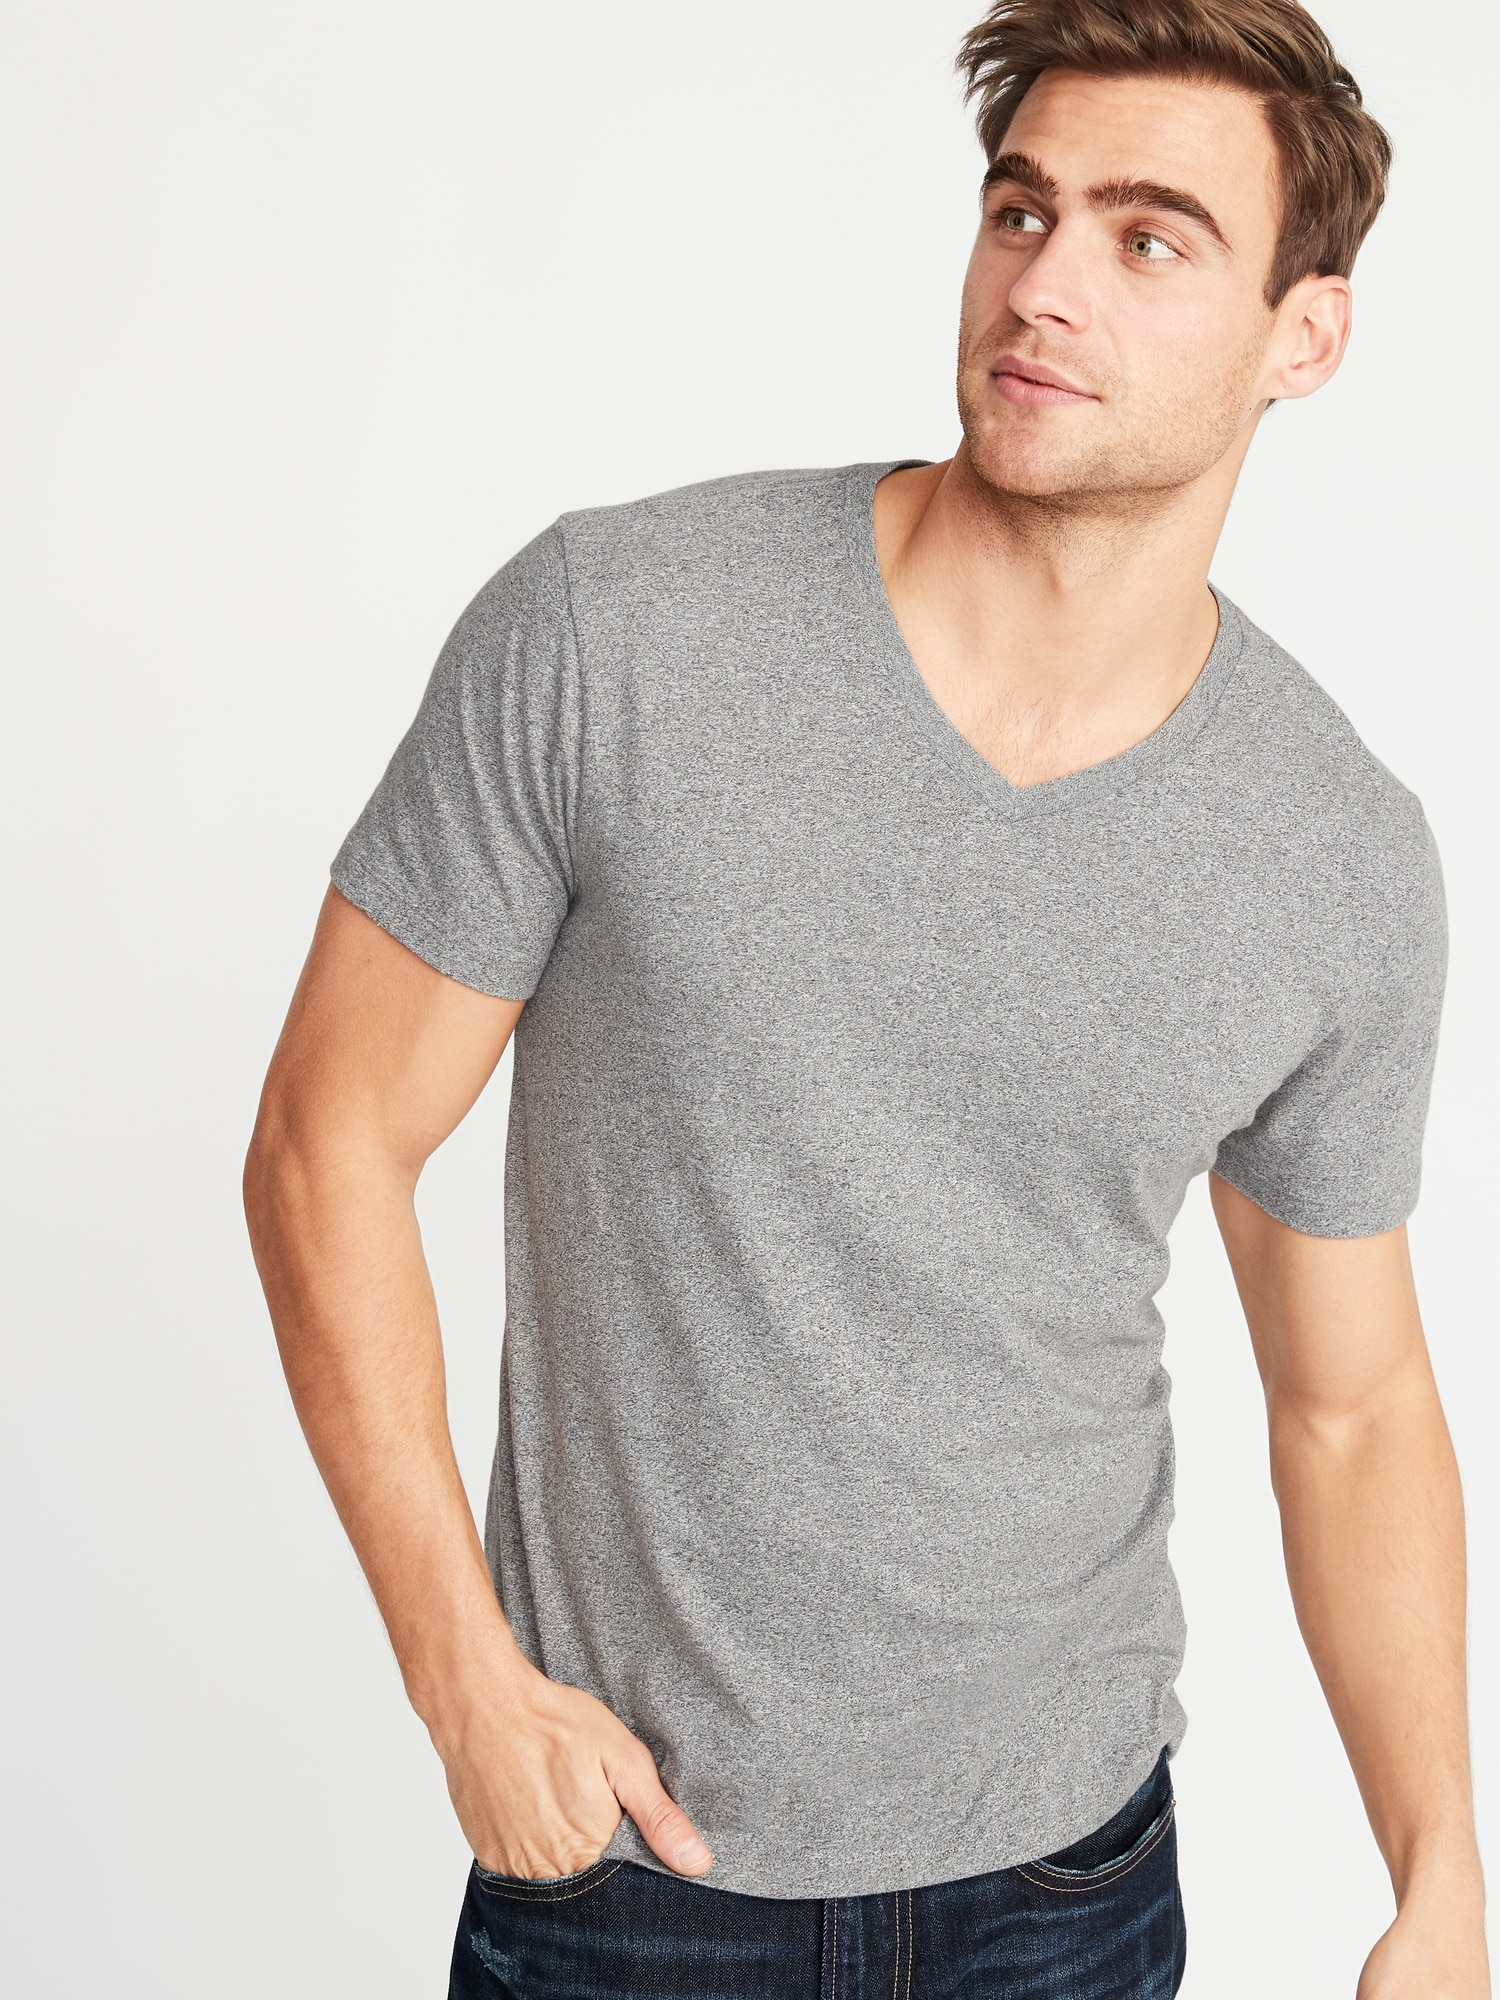 Soft Washed Heathered V Neck Tee For Men Old Navy